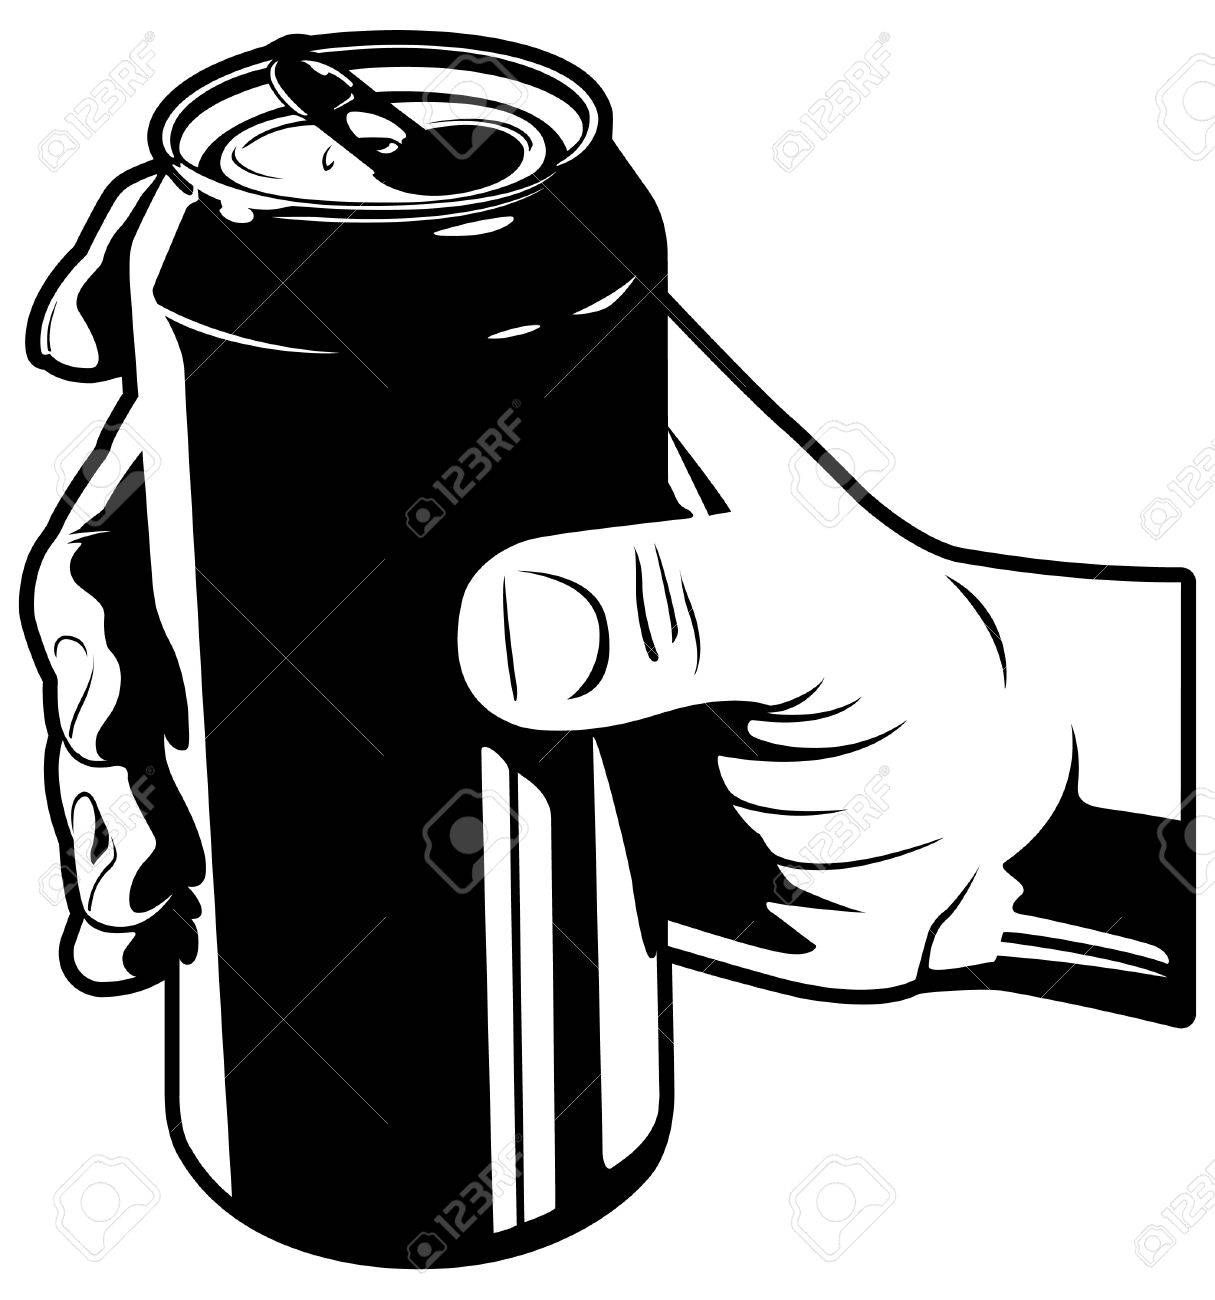 Hand With Soda Can Royalty Free Cliparts, Vectors, And Stock ...